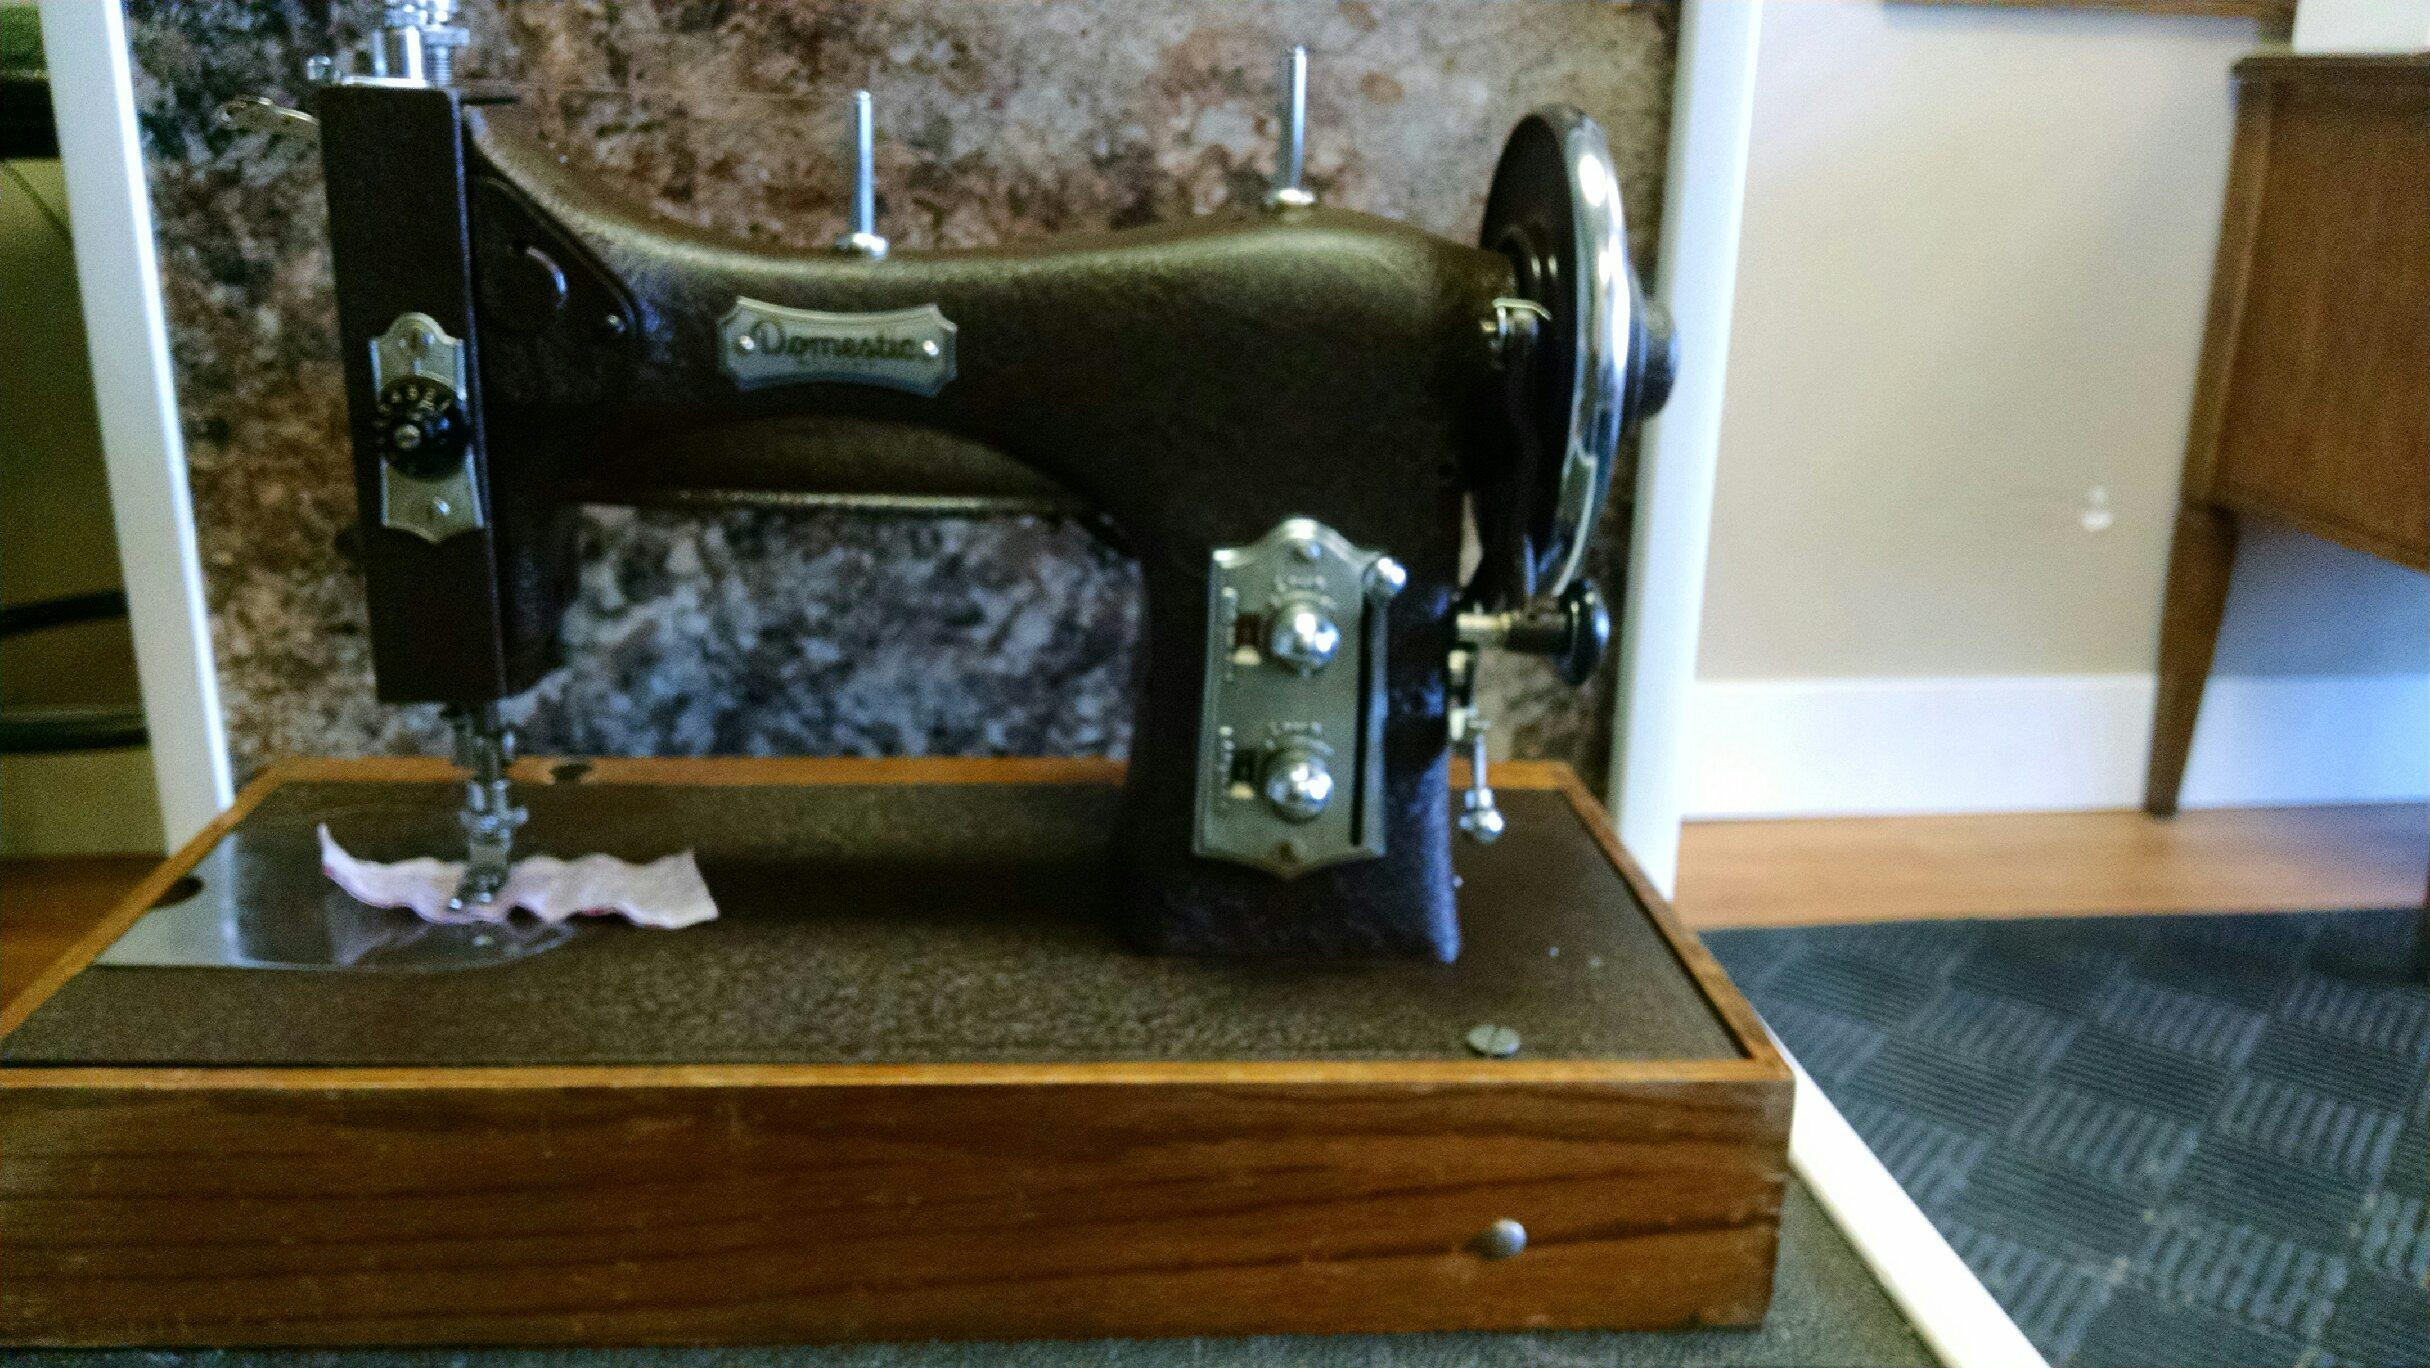 Sewing machine after receiving cleaning services in Wasilla, AK